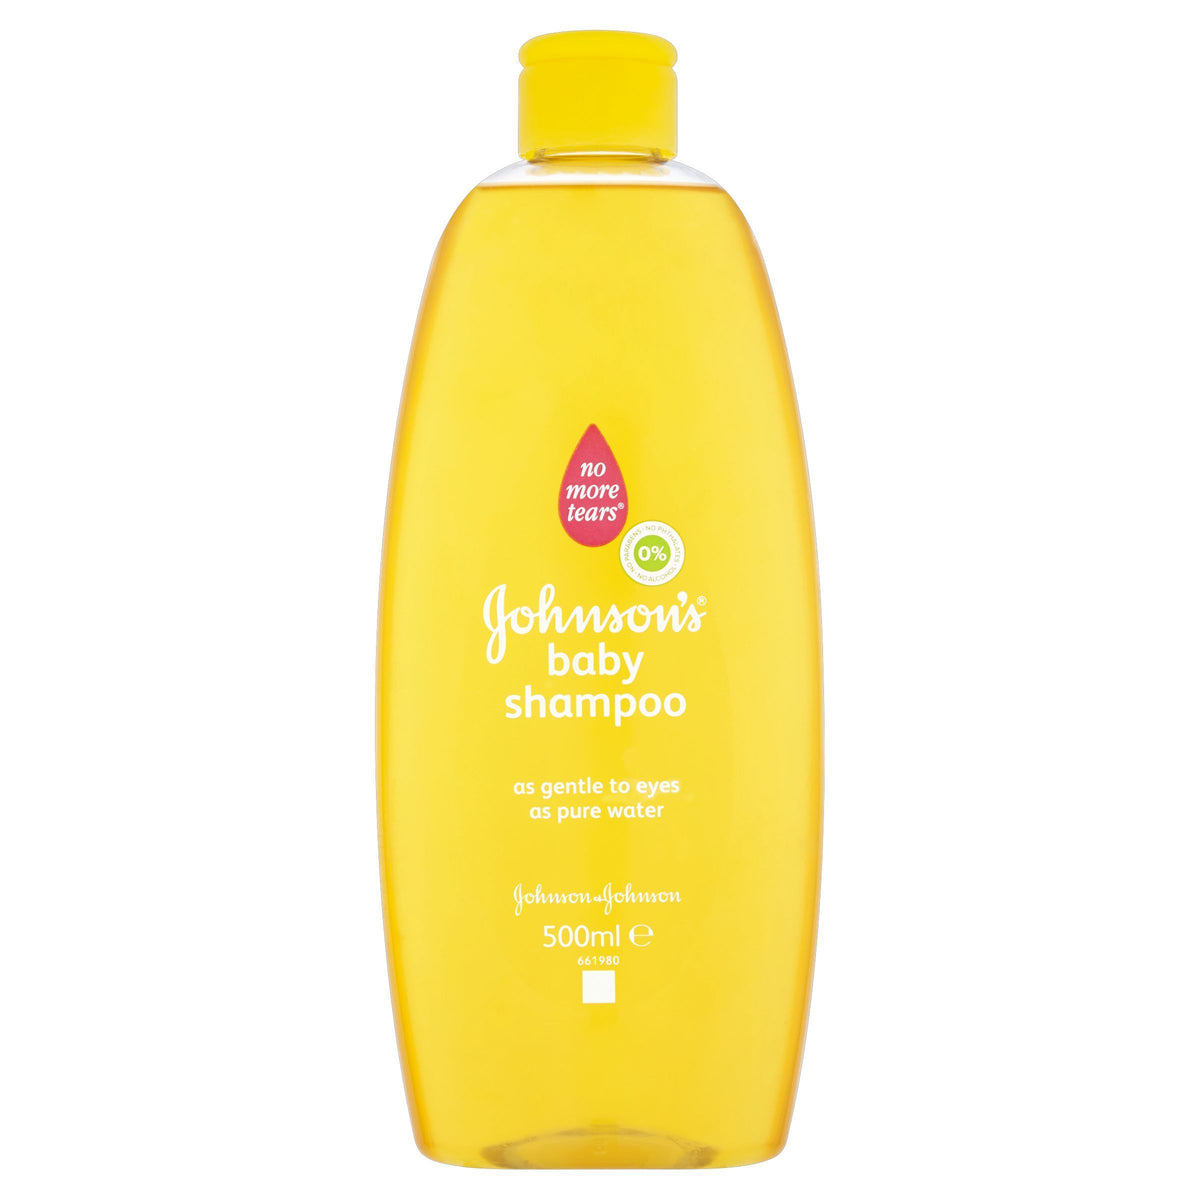 Johnson's Baby Shampoo 500ml - Pack of 4